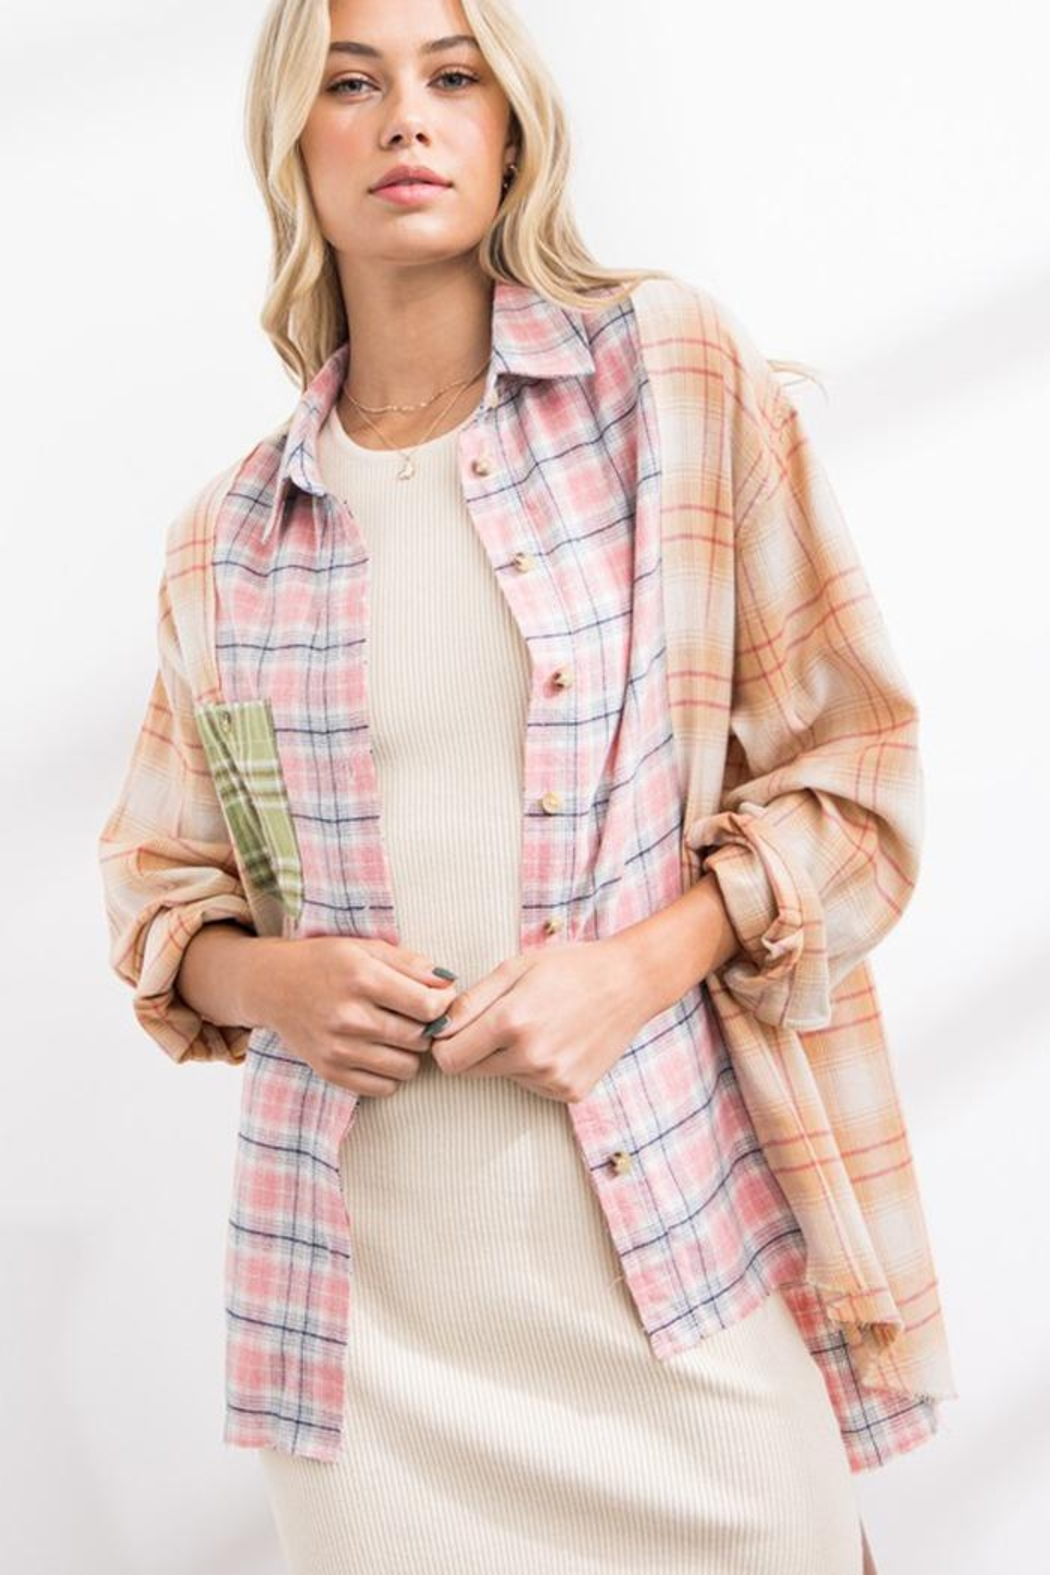 Papermoon Patchwork Oversized Soft Cotton Plaid Button Down Shirt Top - Main Image